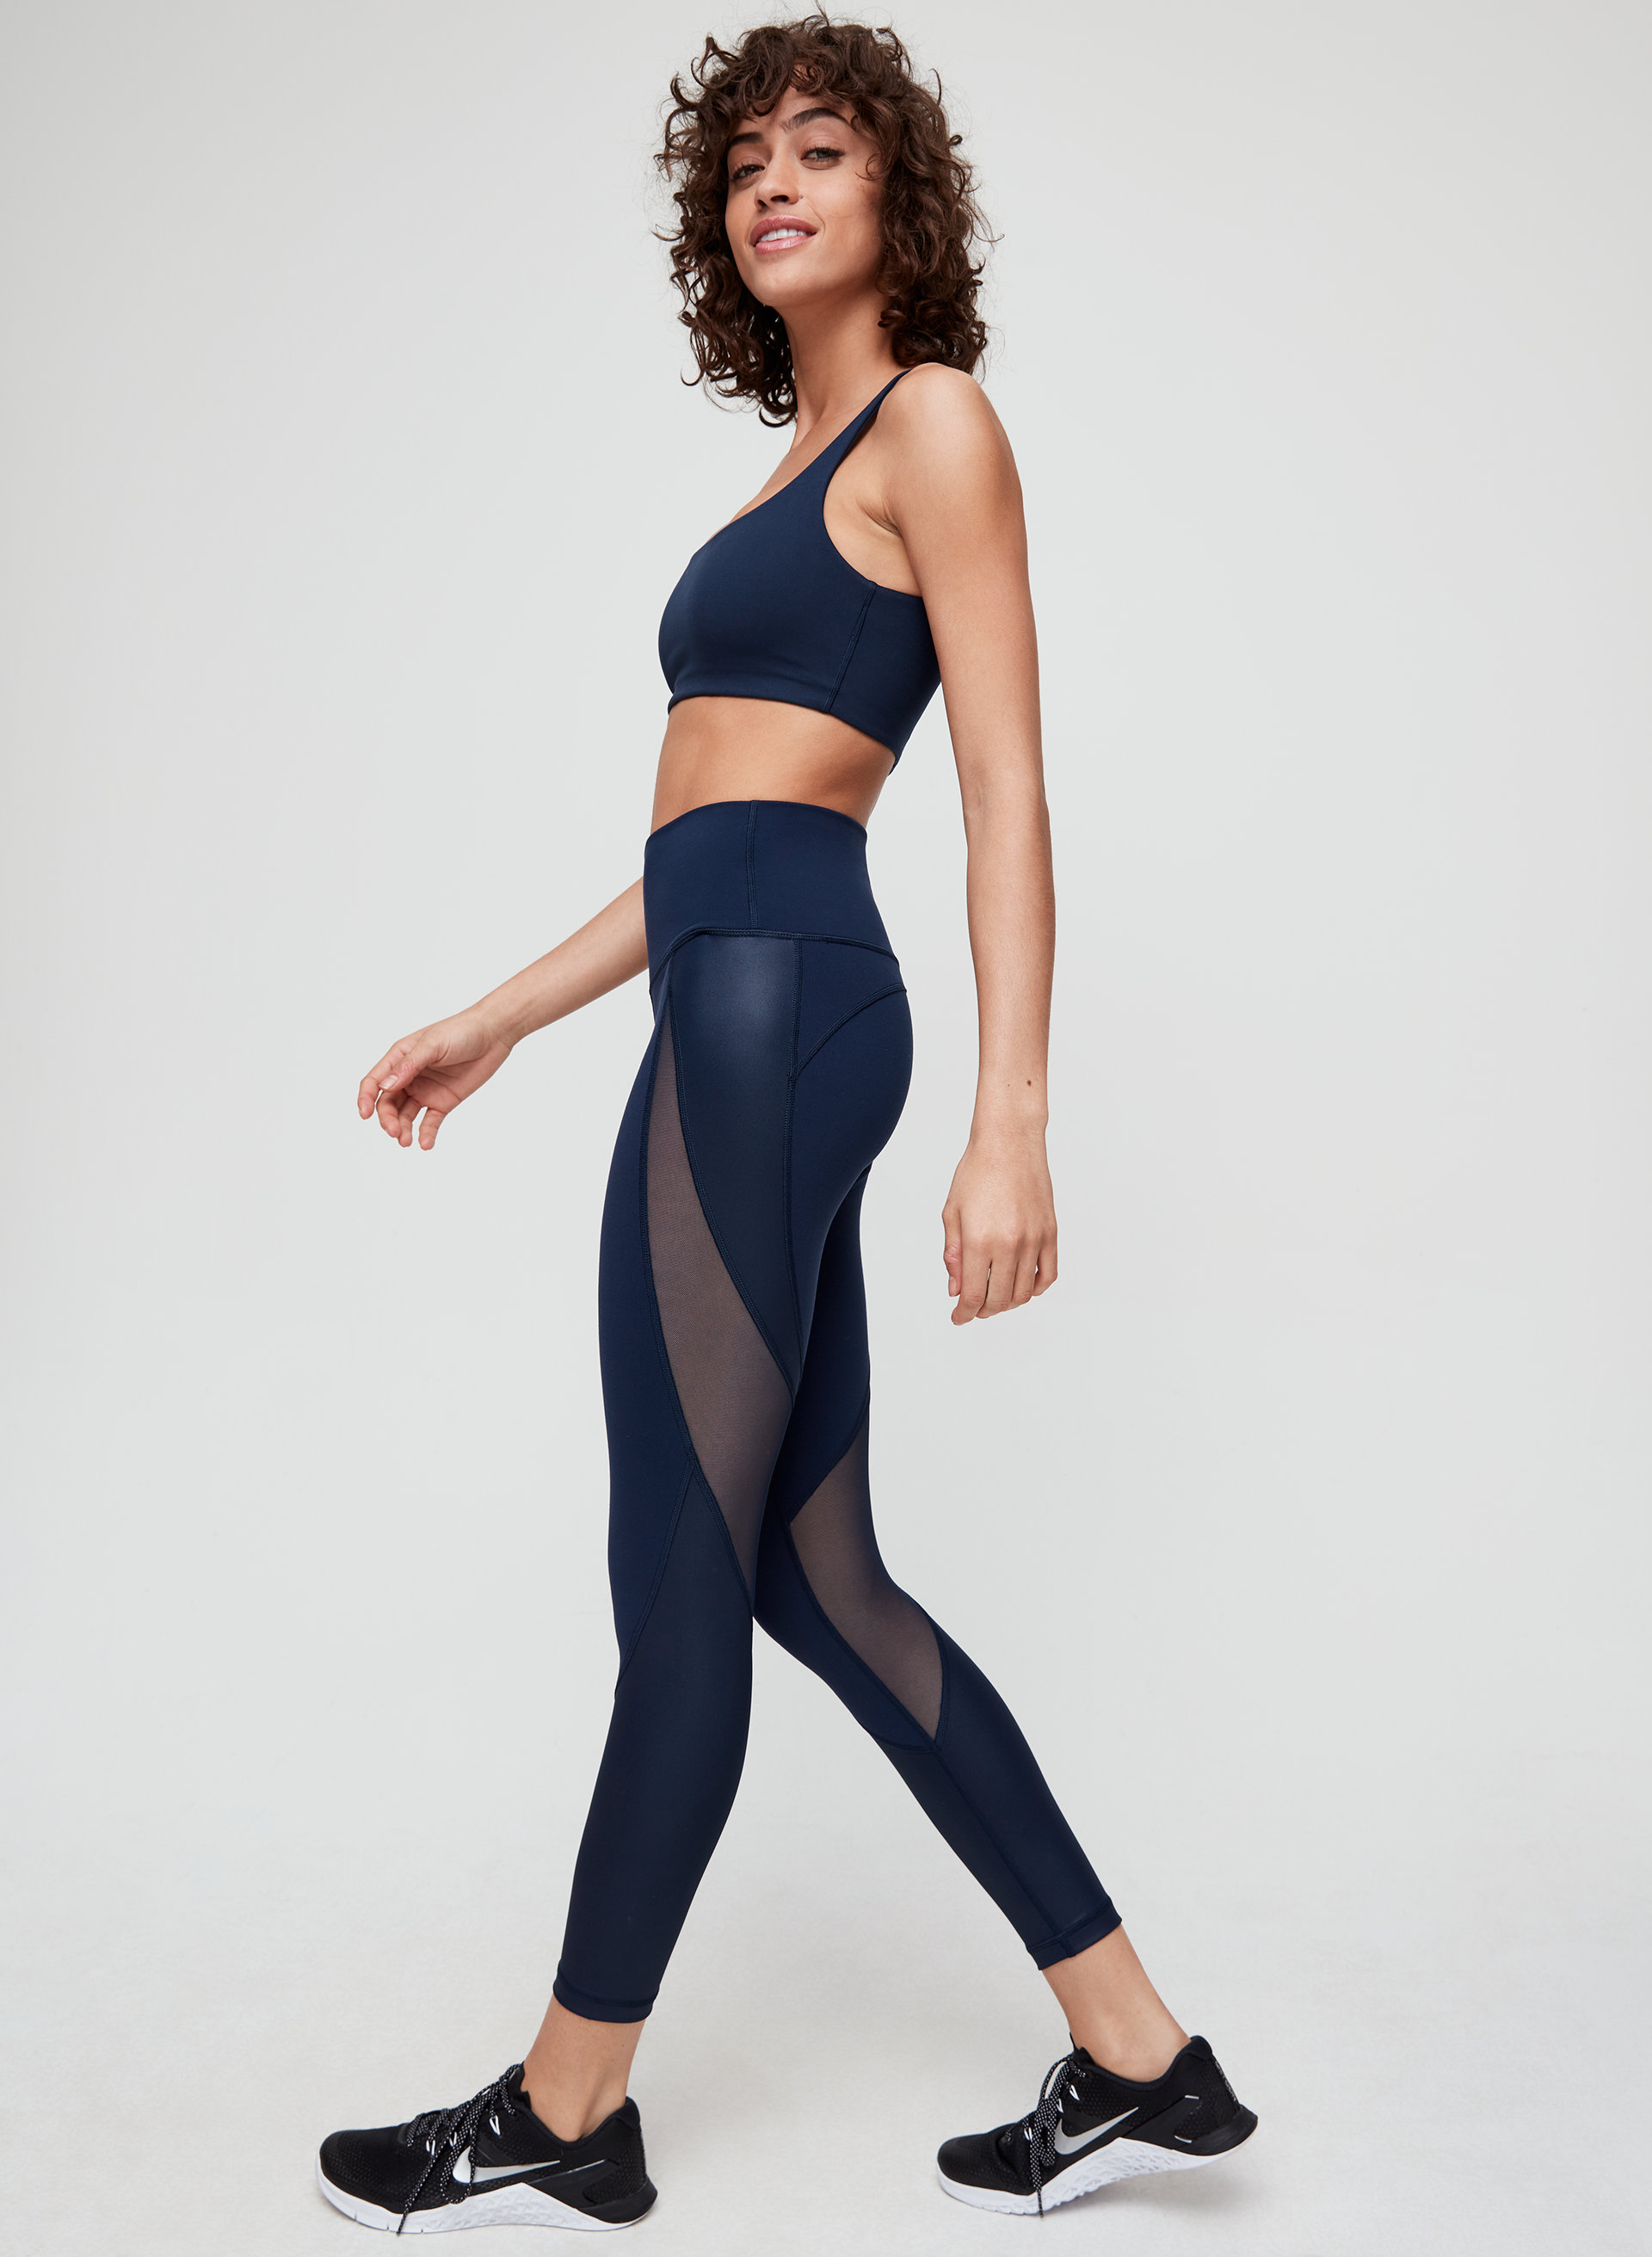 265826235e969 relay squad pant High-waisted, mesh workout legging